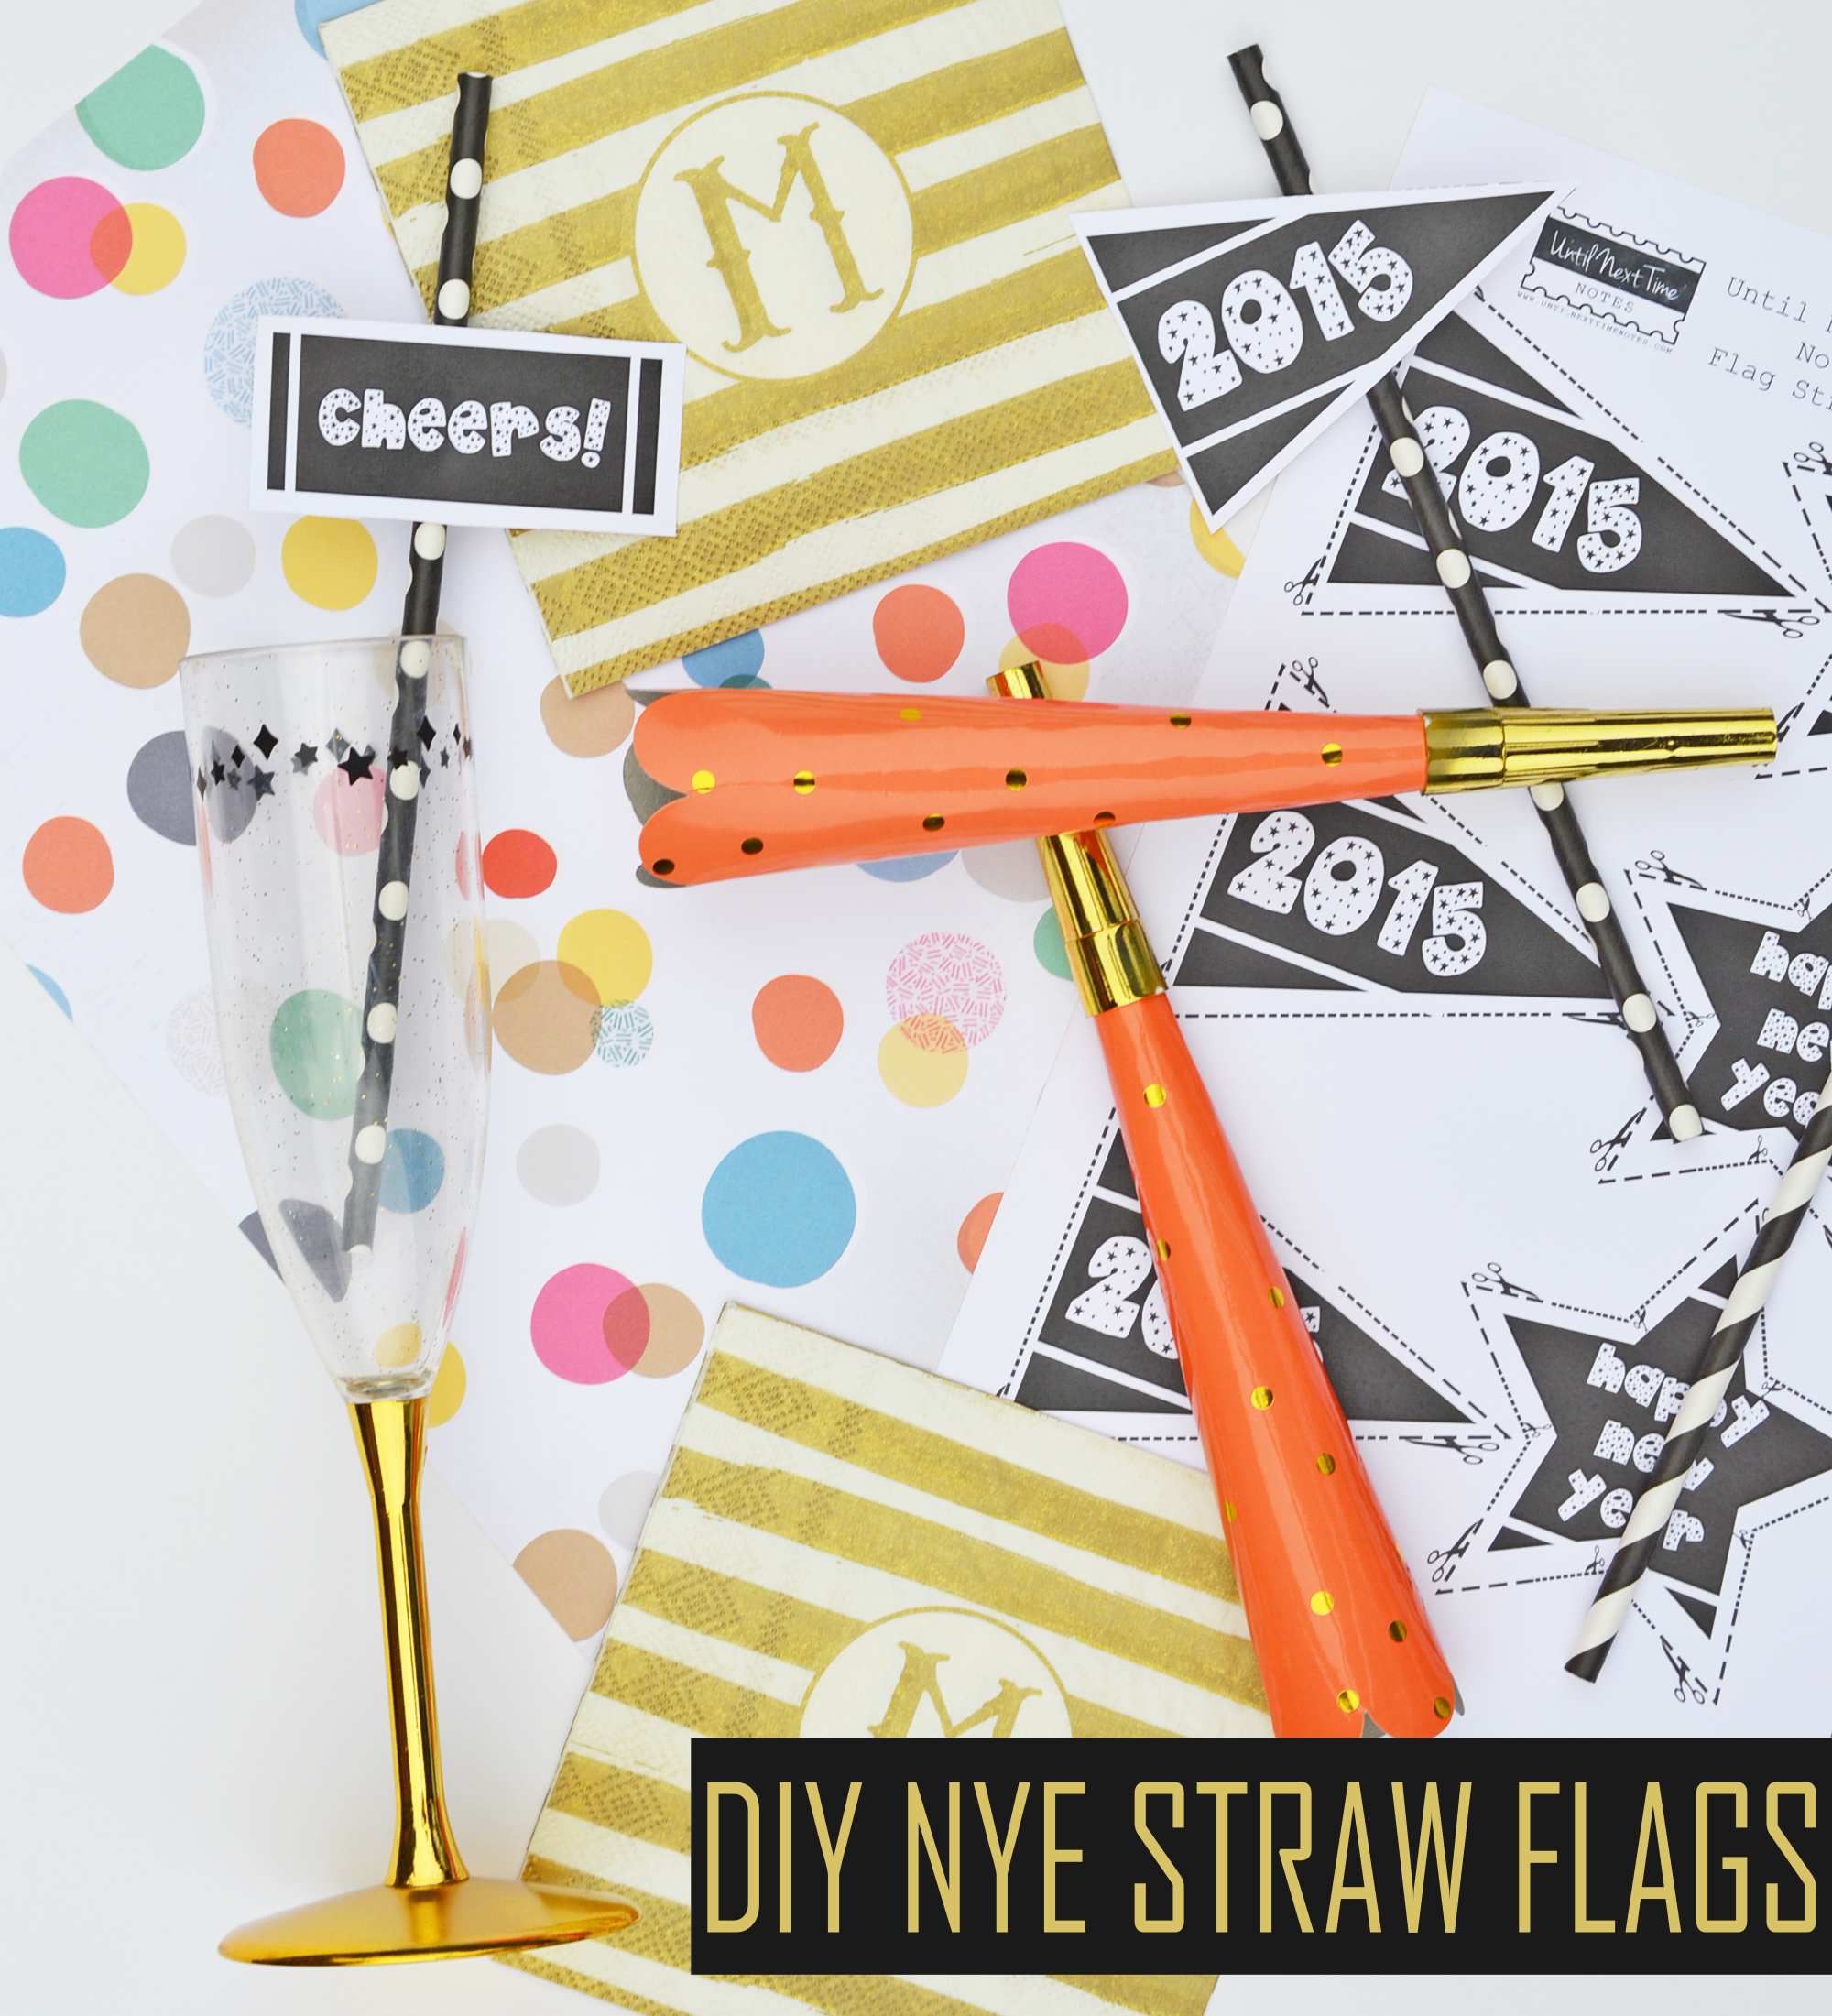 Diy Free Printable New Years Eve Straw Flags